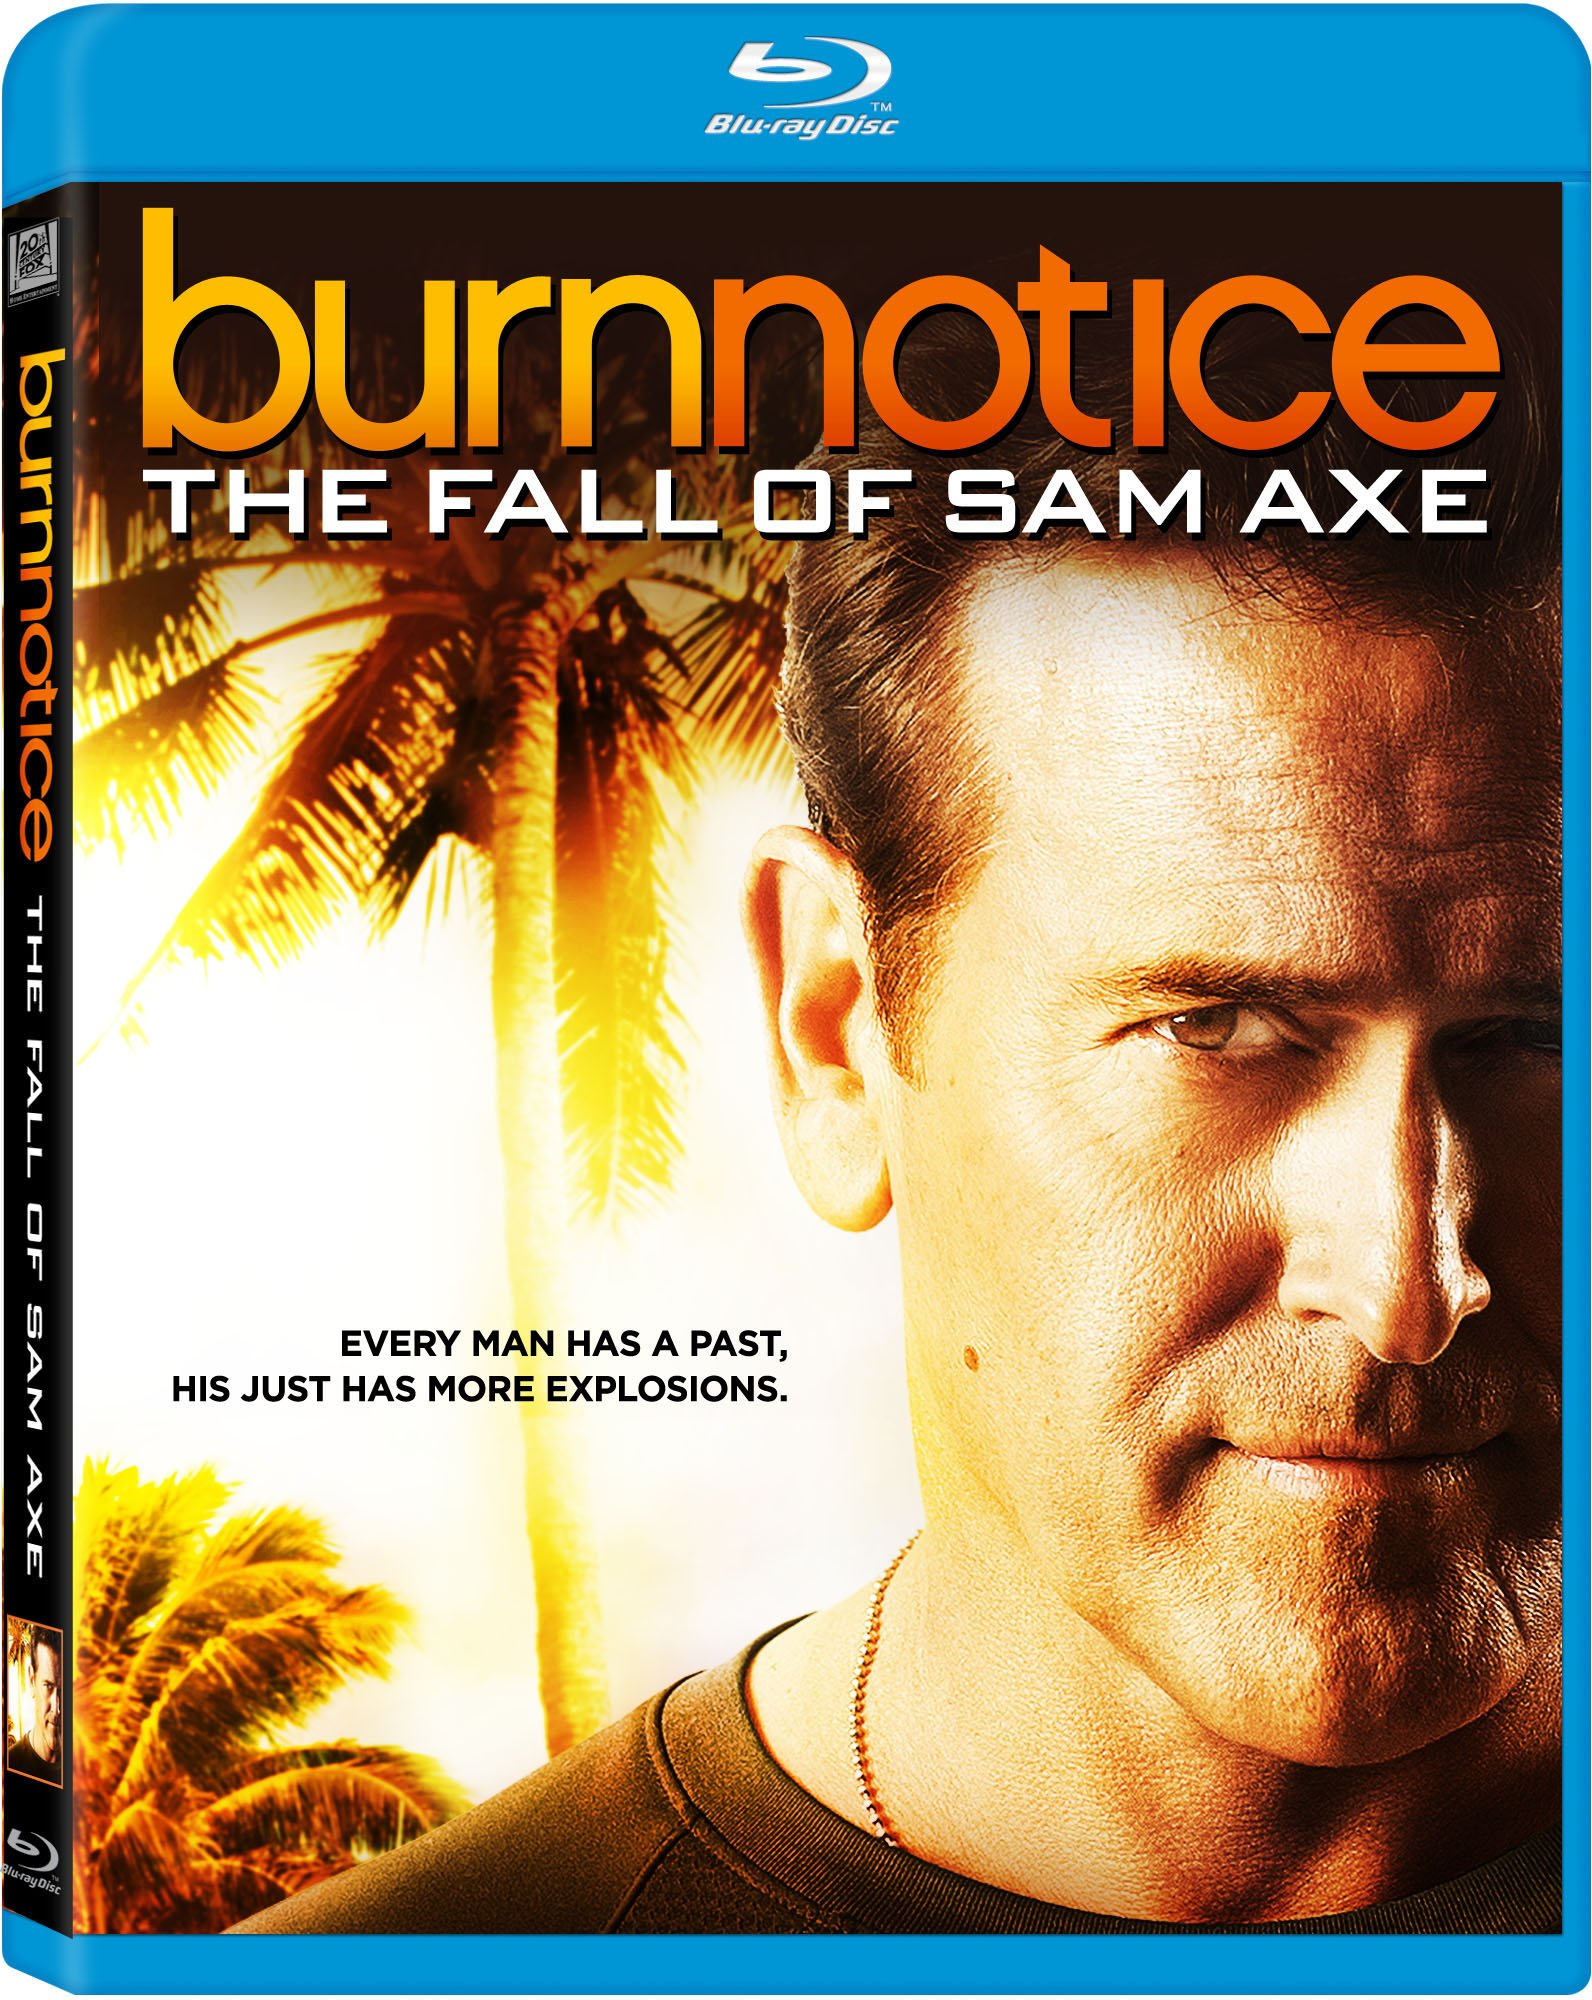 Blu-ray : Burn Notice: The Fall Of Sam Axe (, Dolby, AC-3, Digital Theater System, Widescreen)